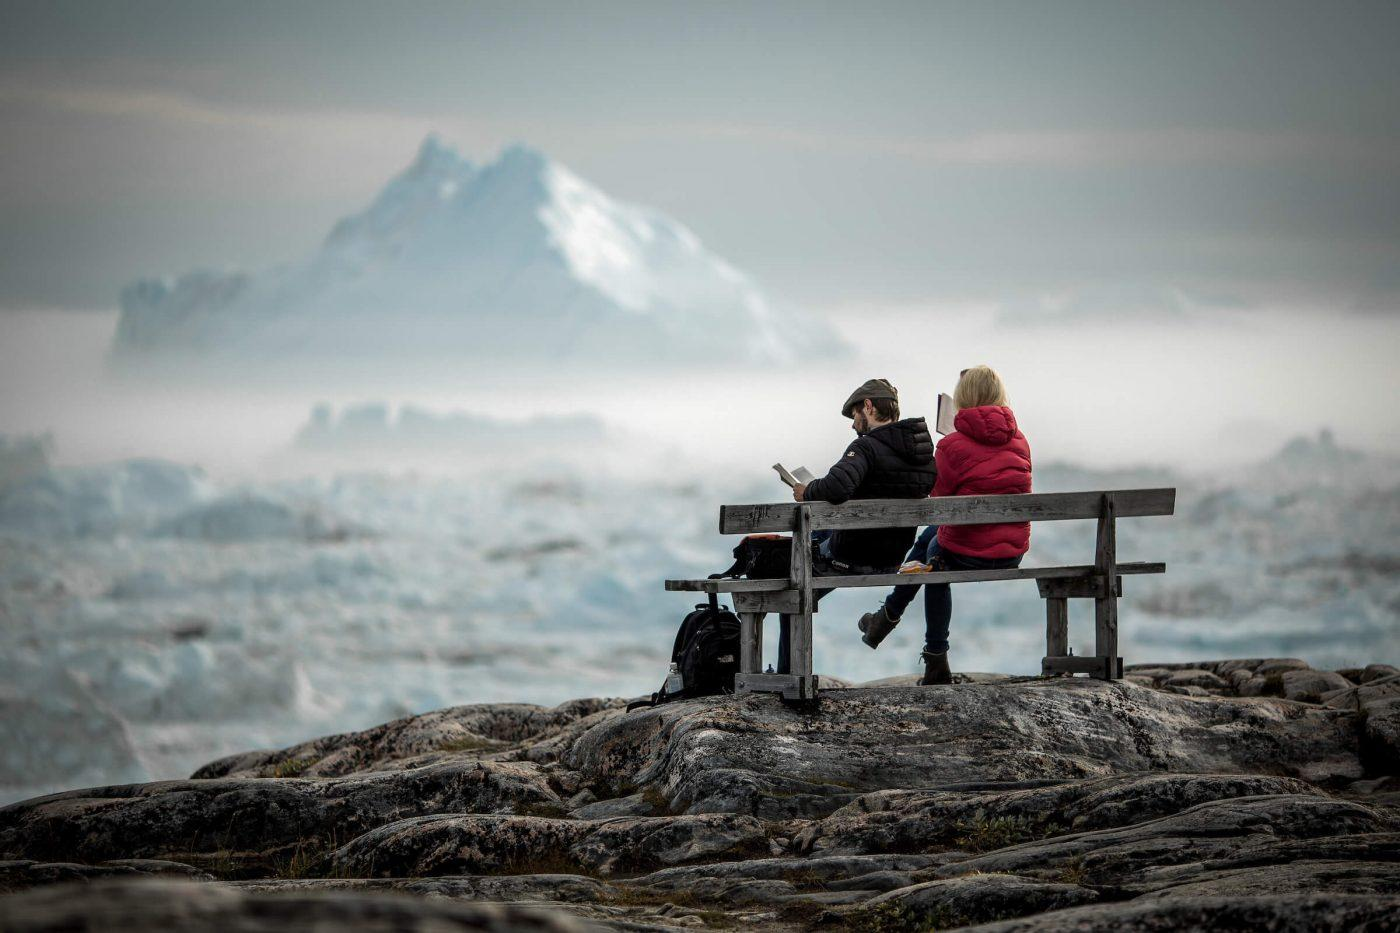 Two travelers reading on a bench overlooking icebergs in the Ilulissat ice fjord in Greenland. By Mads Pihl